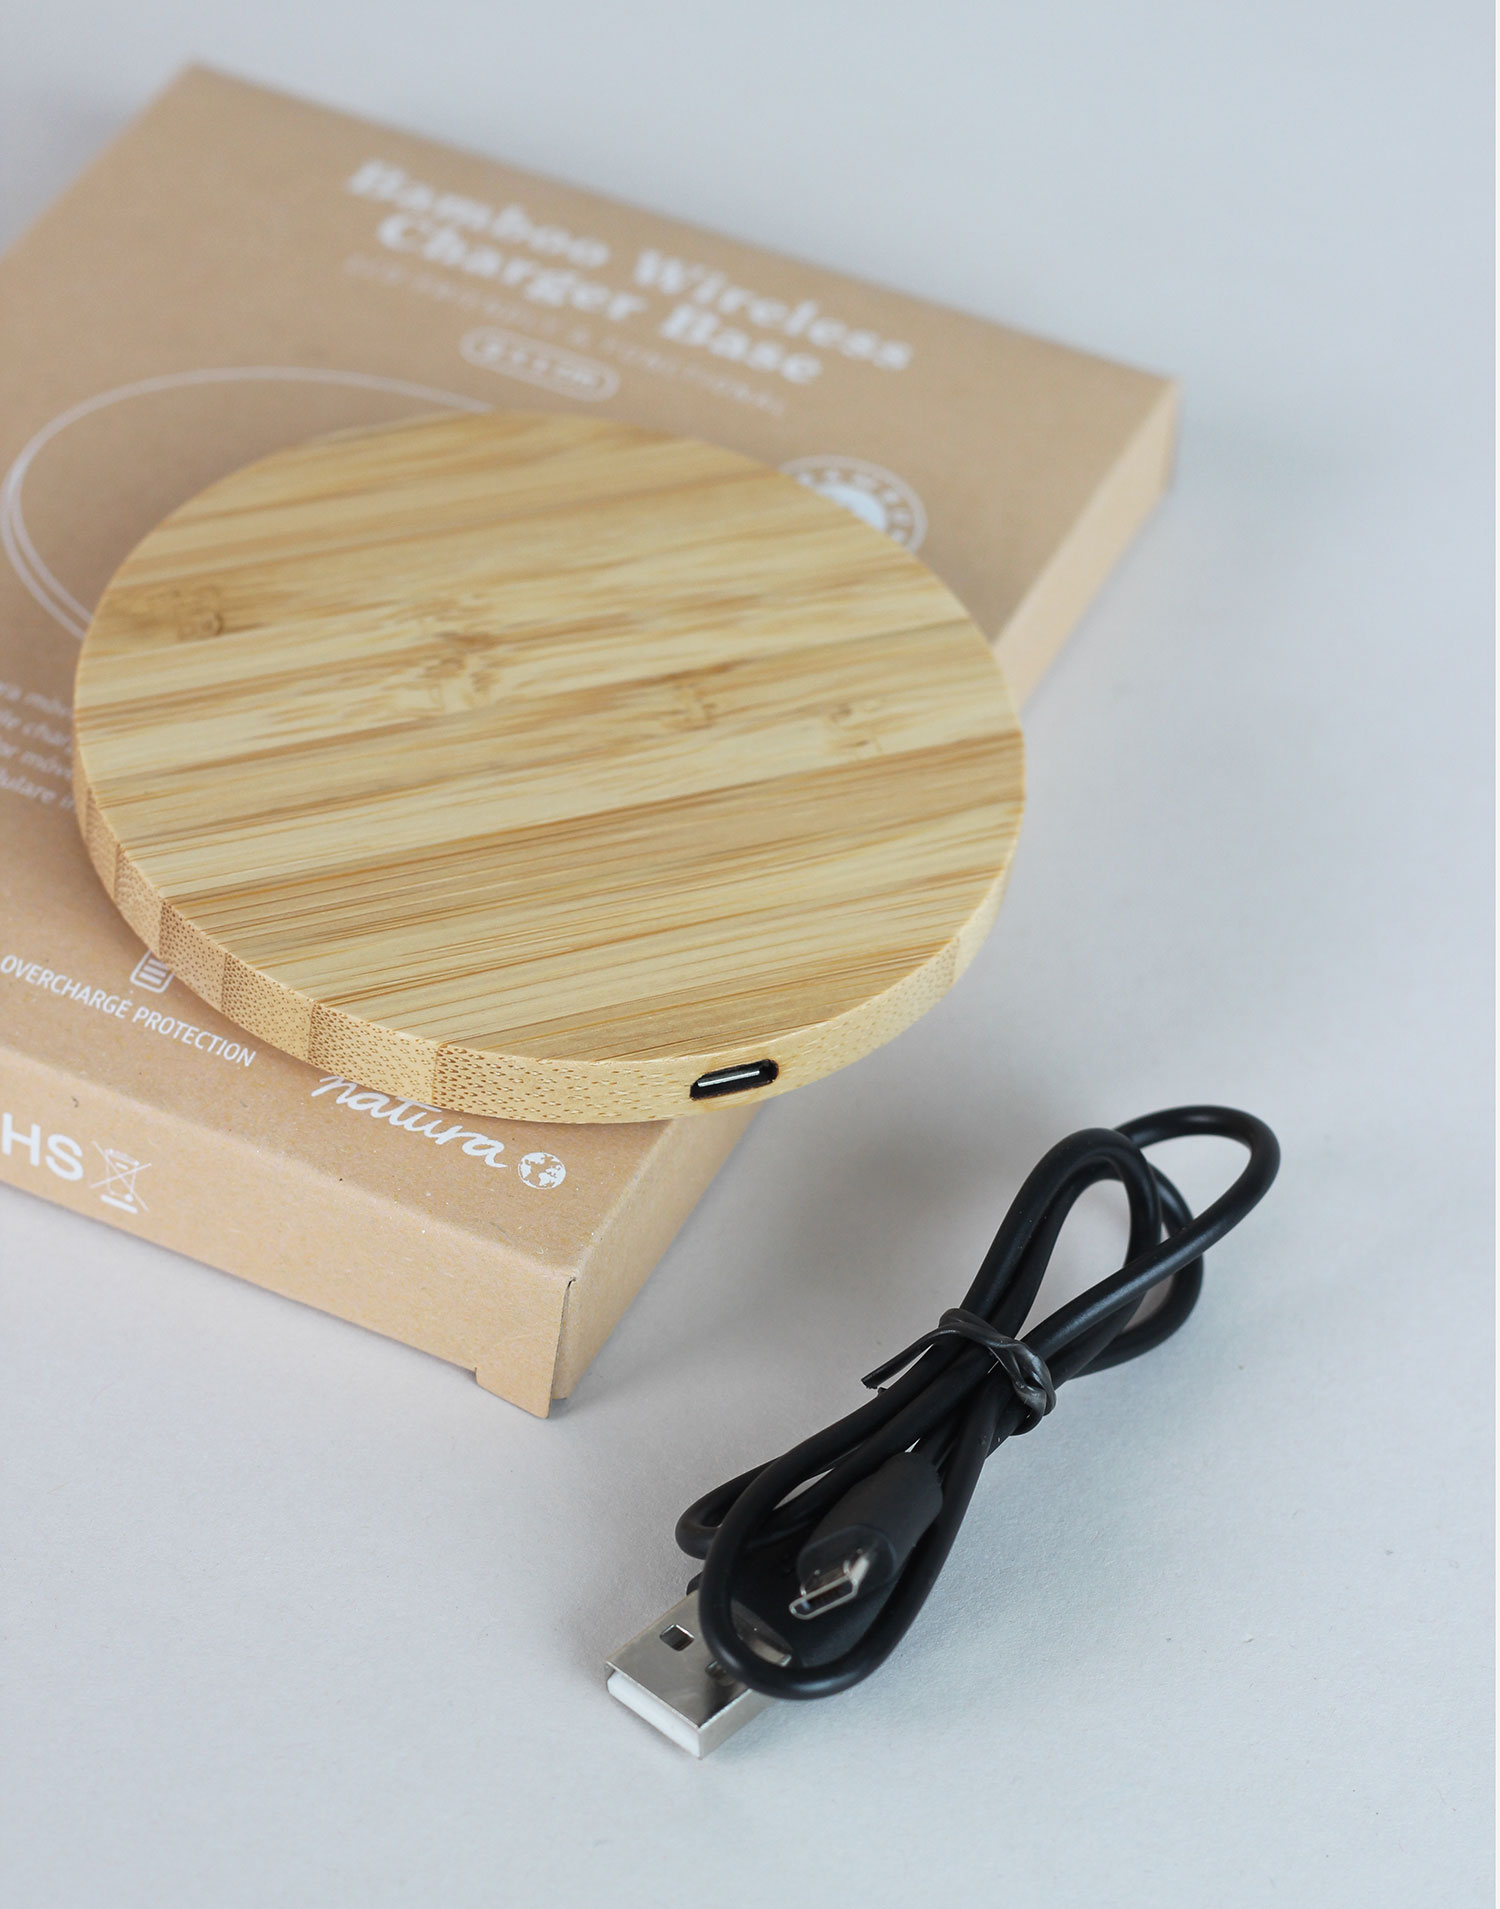 Bamboo mobile charger base